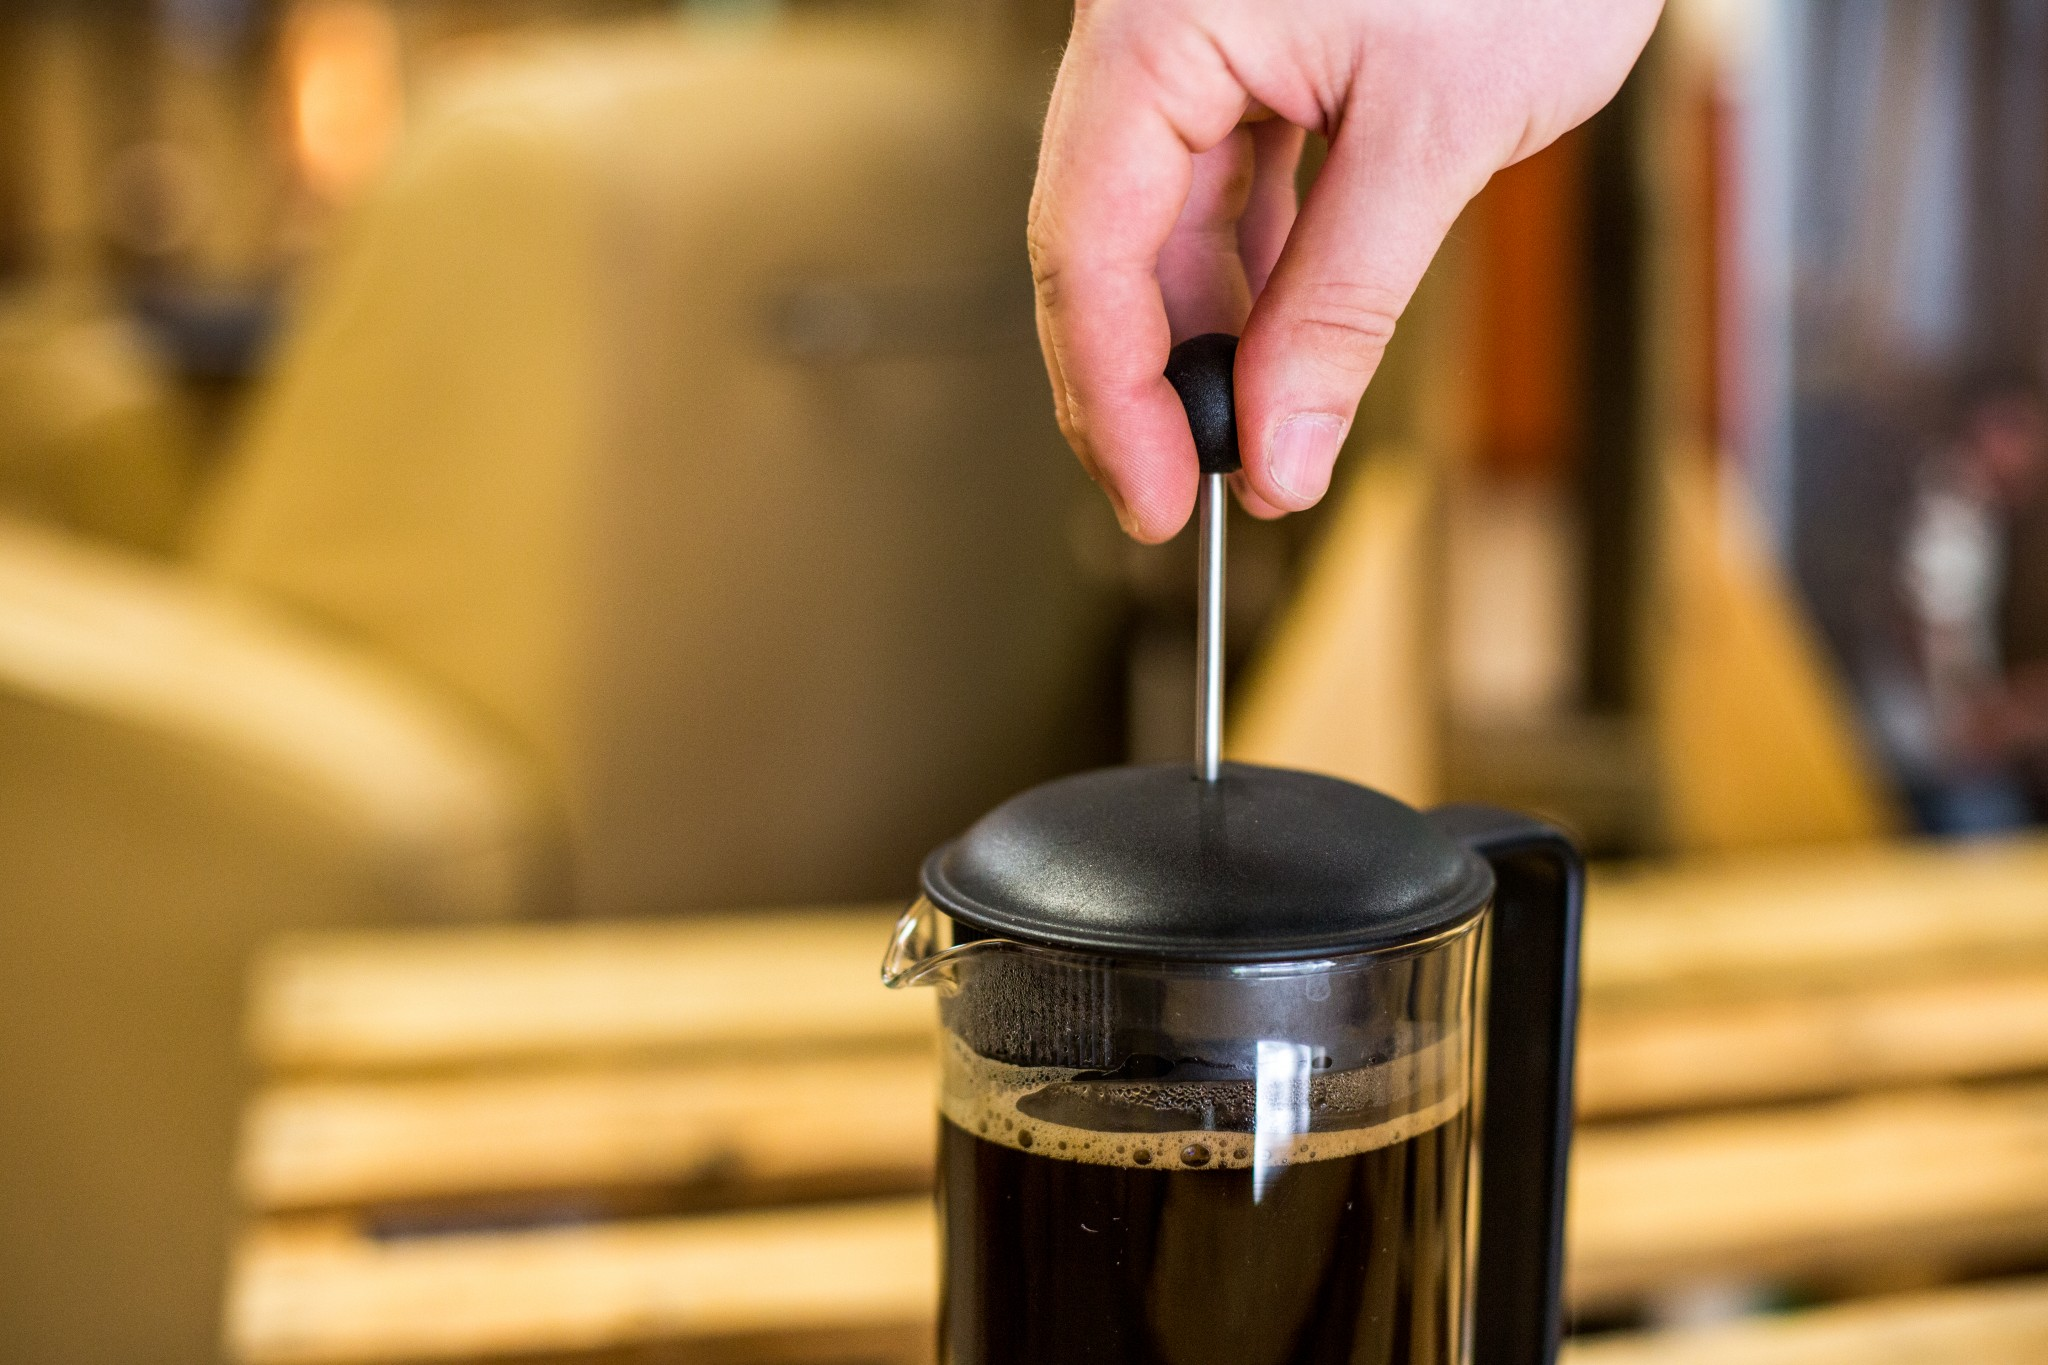 French Press Brewing Guide - Coffee Press